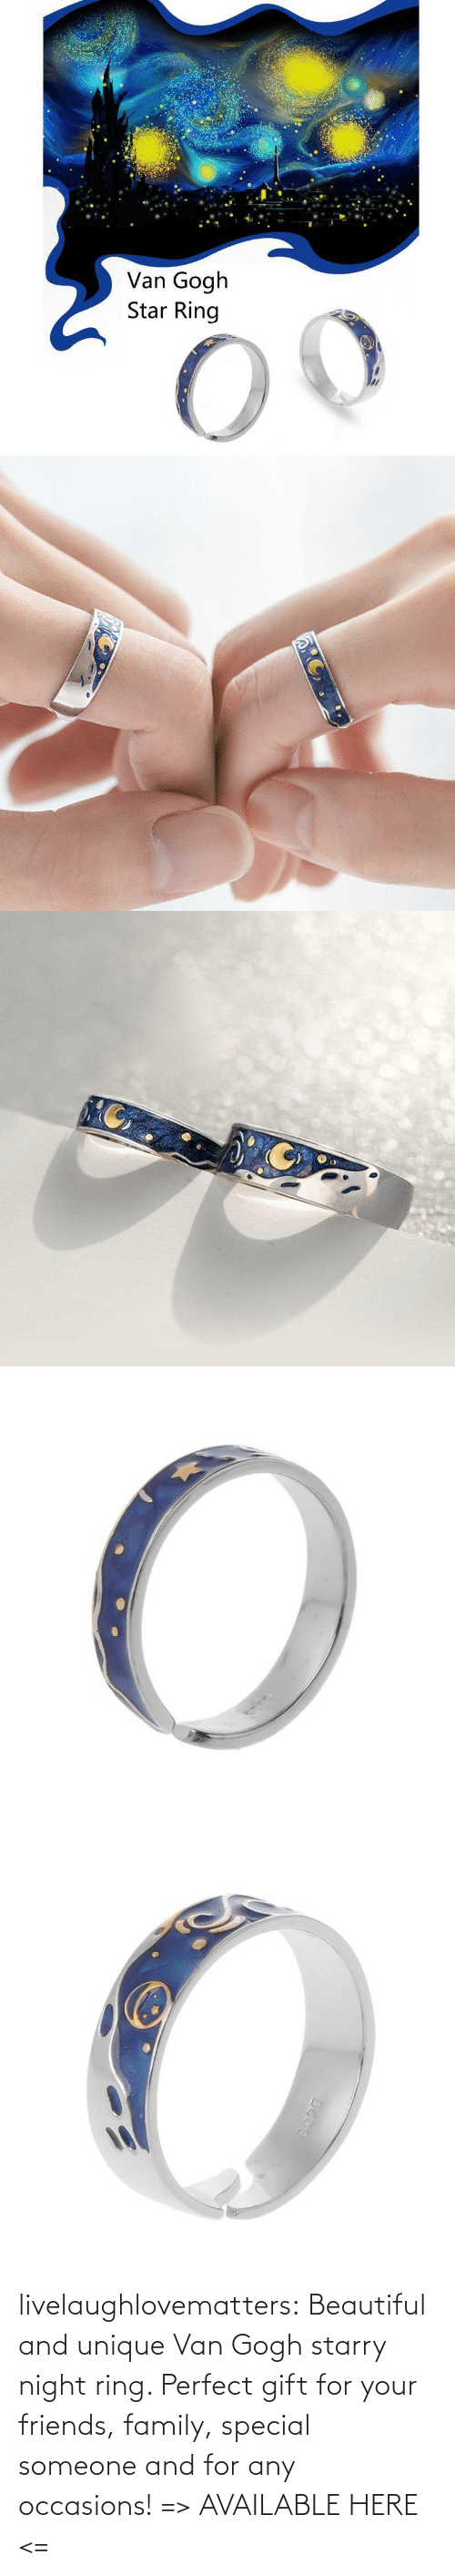 sky: livelaughlovematters: Beautiful and unique Van Gogh starry night ring. Perfect gift for your friends, family, special someone and for any occasions! =>AVAILABLE HERE <=